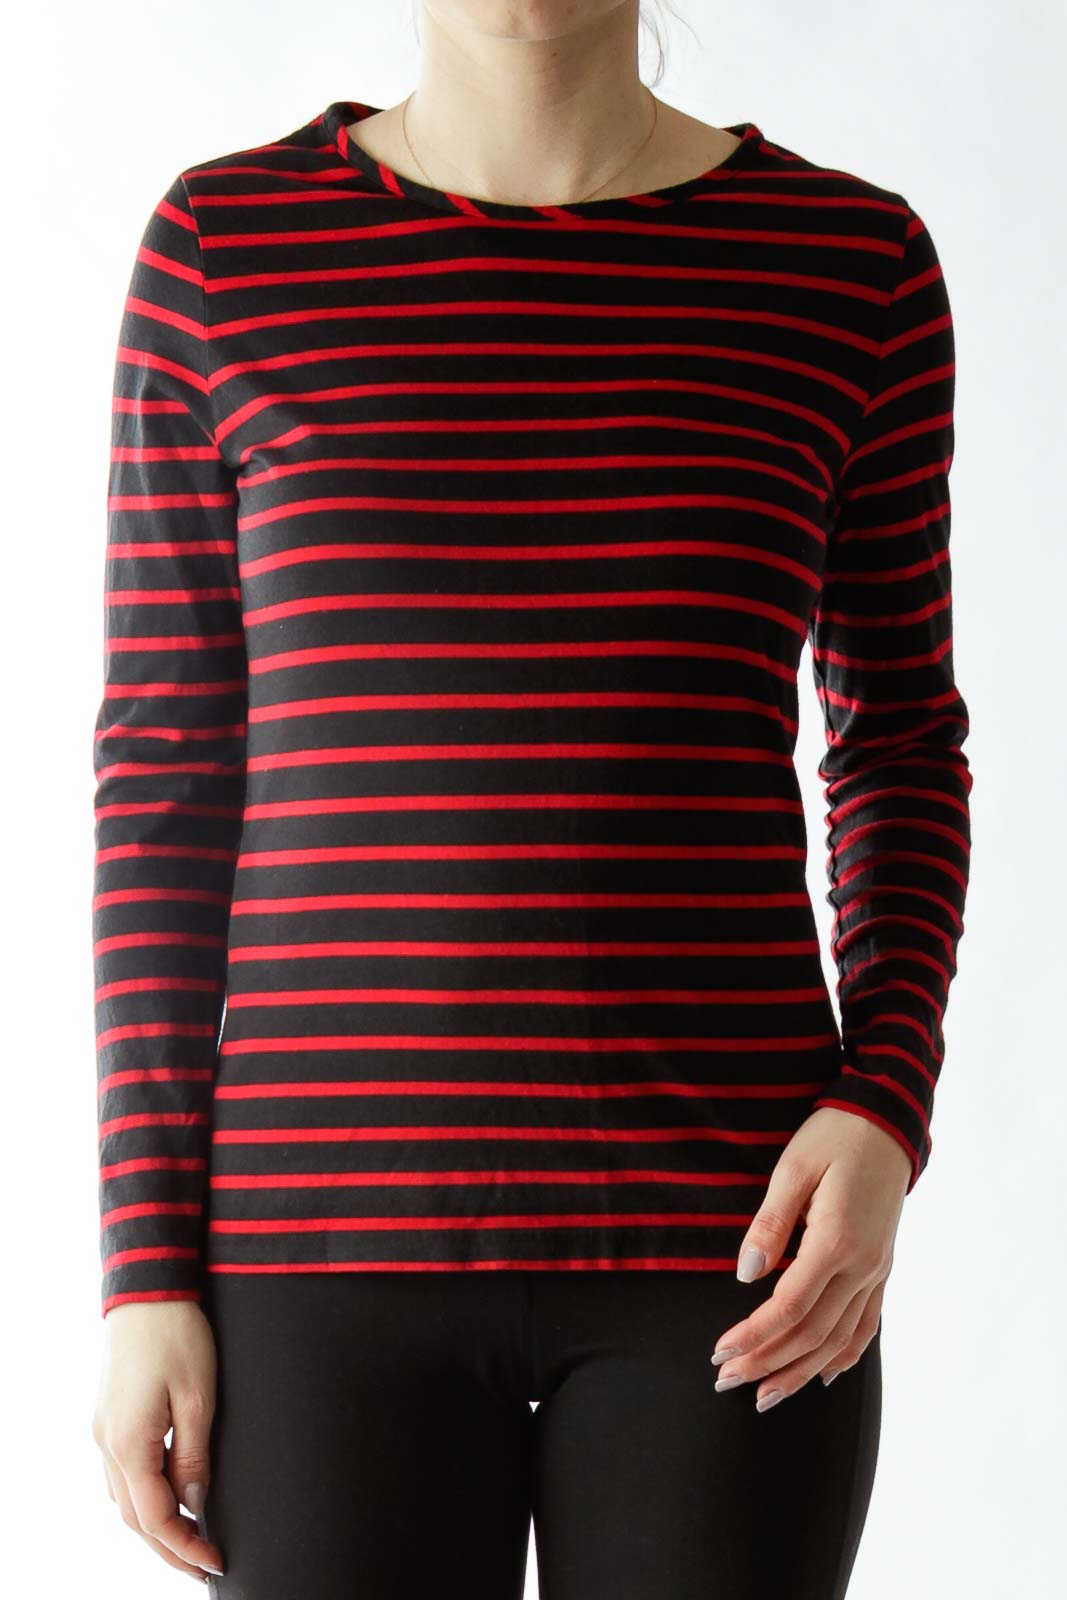 Black Red Striped T-Shirt Front